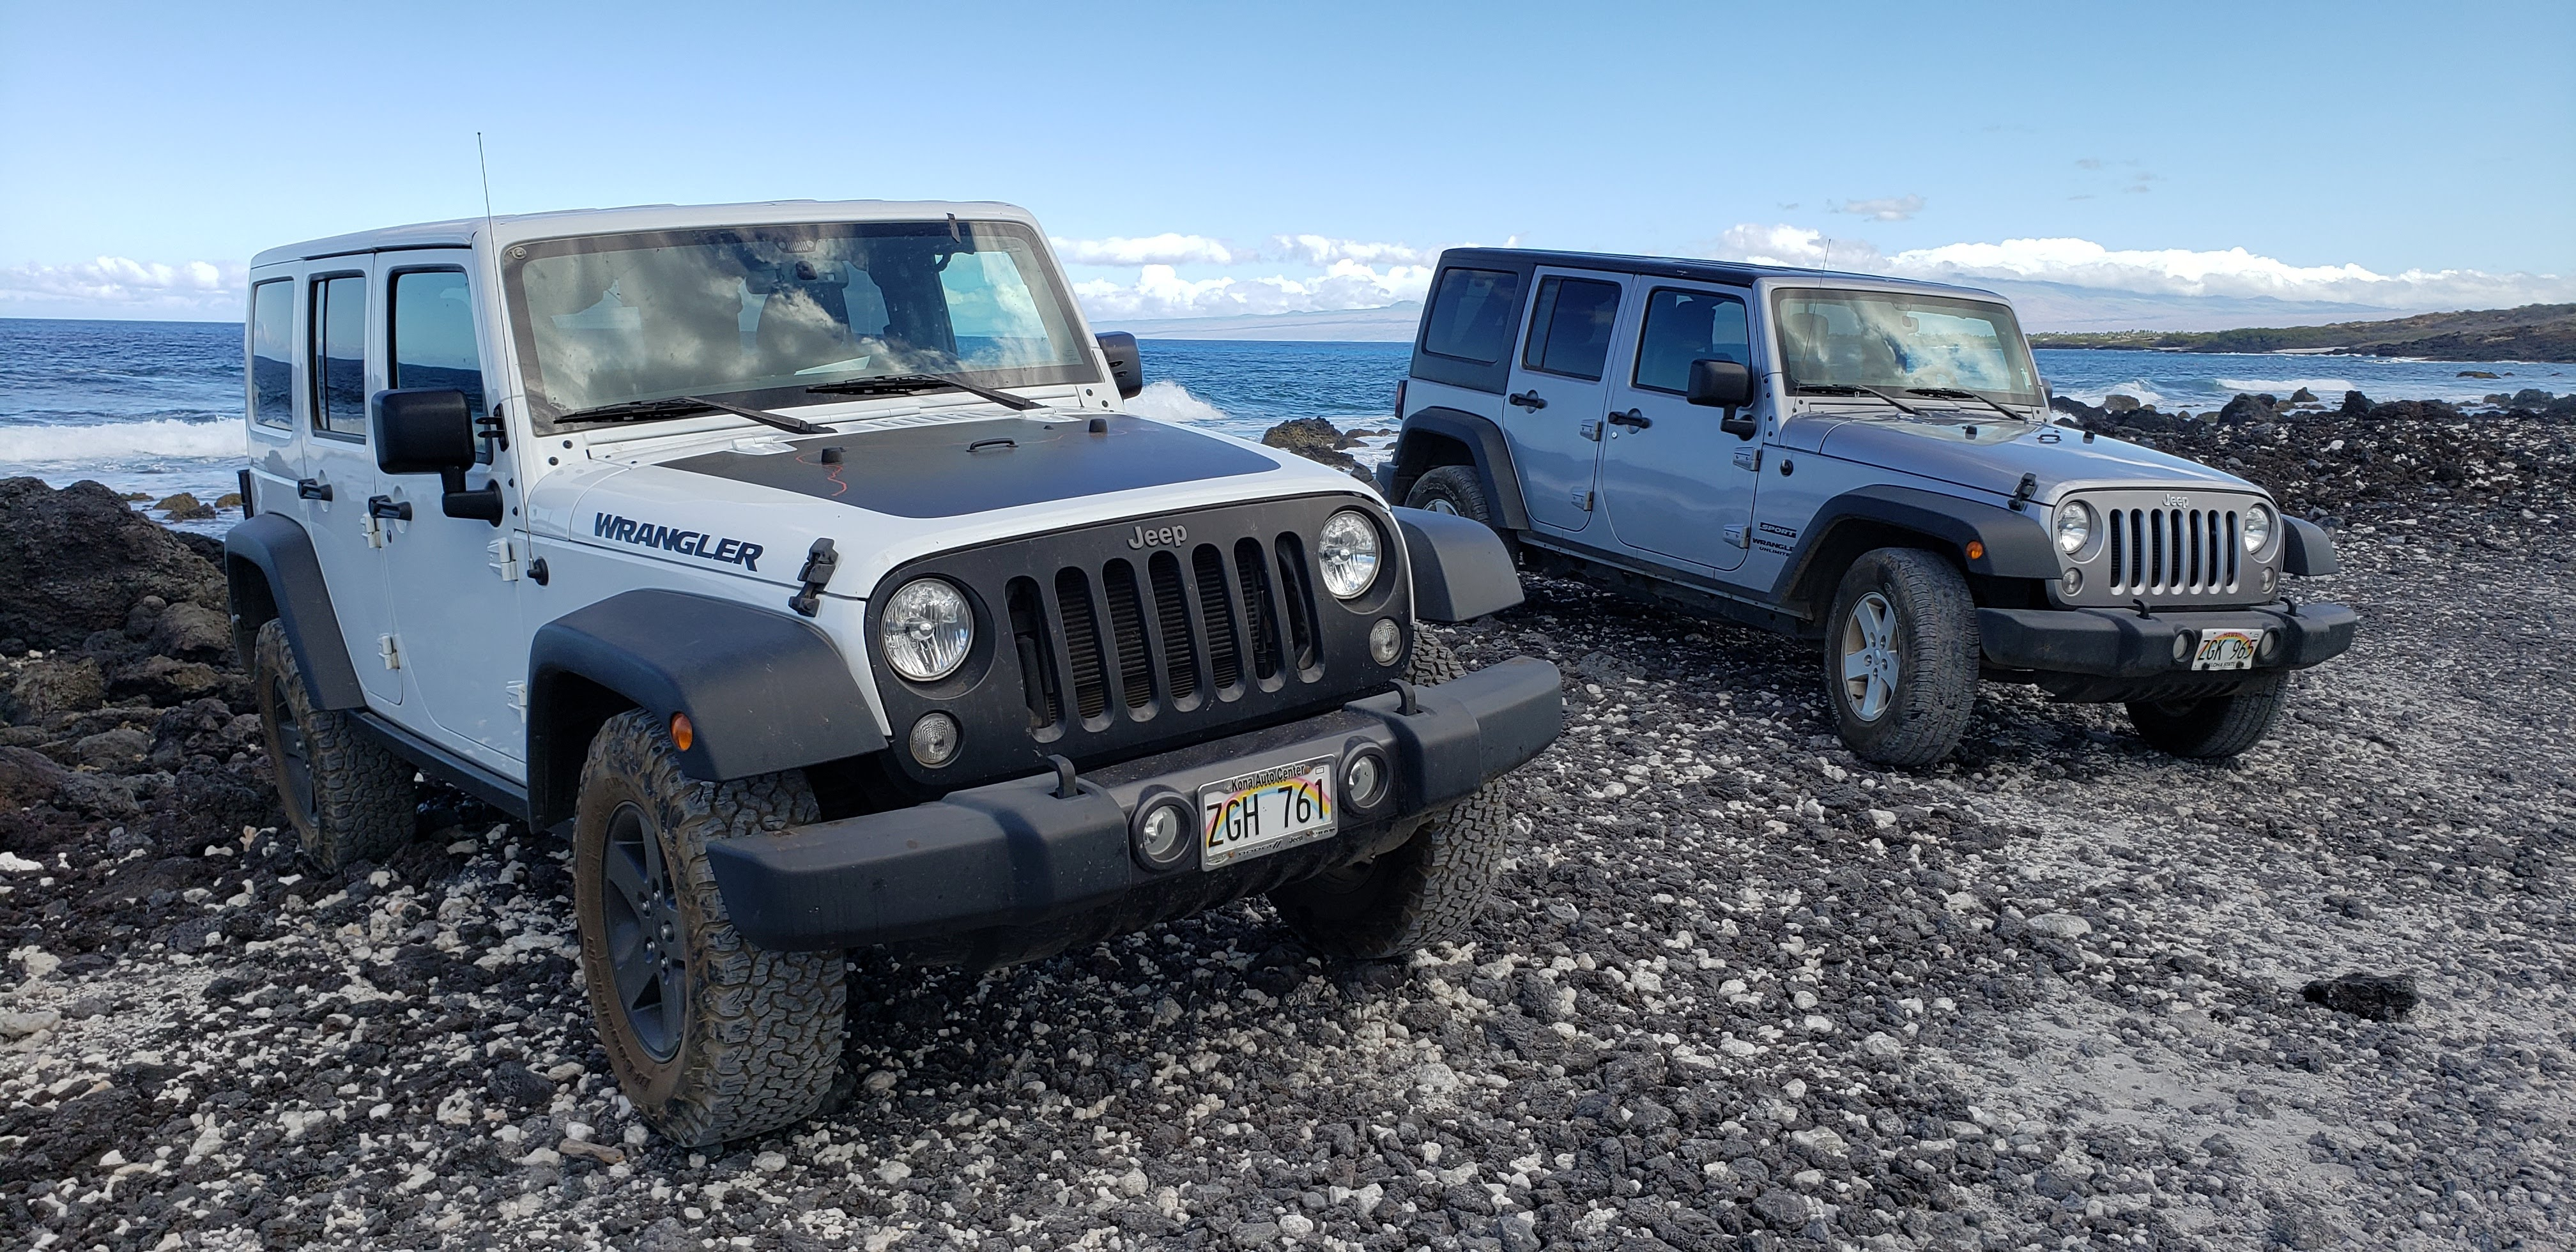 hawaii-off-roading-2019-24